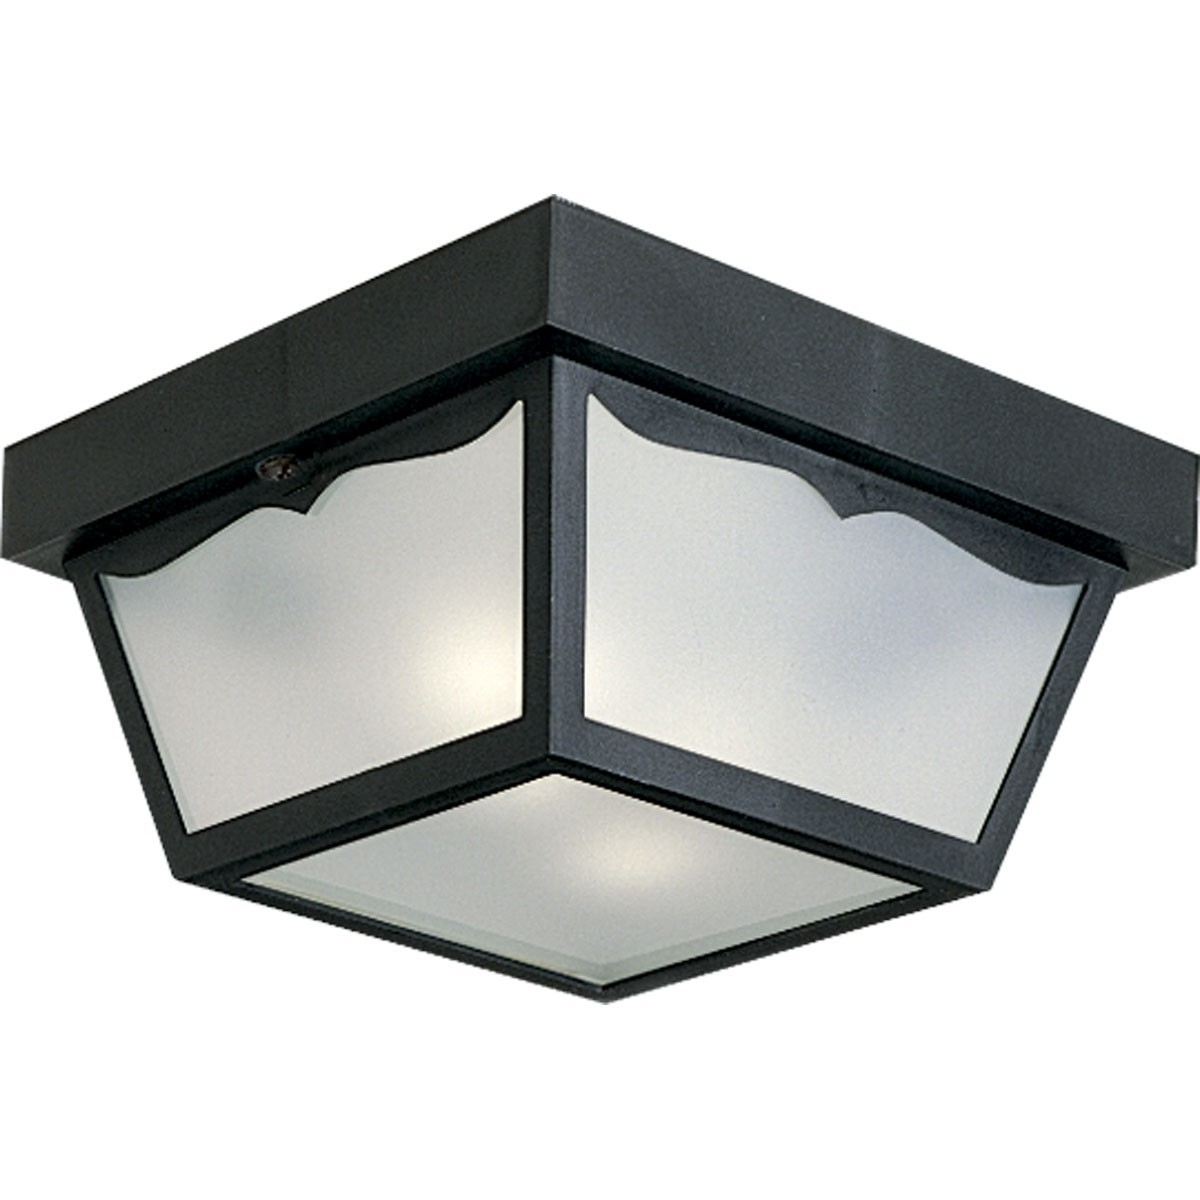 Favorite Outdoor Ceiling Motion Sensor Lights With Regard To Outdoor Ceiling Mount Motion Sensor Light • Outdoor Lighting (View 2 of 20)